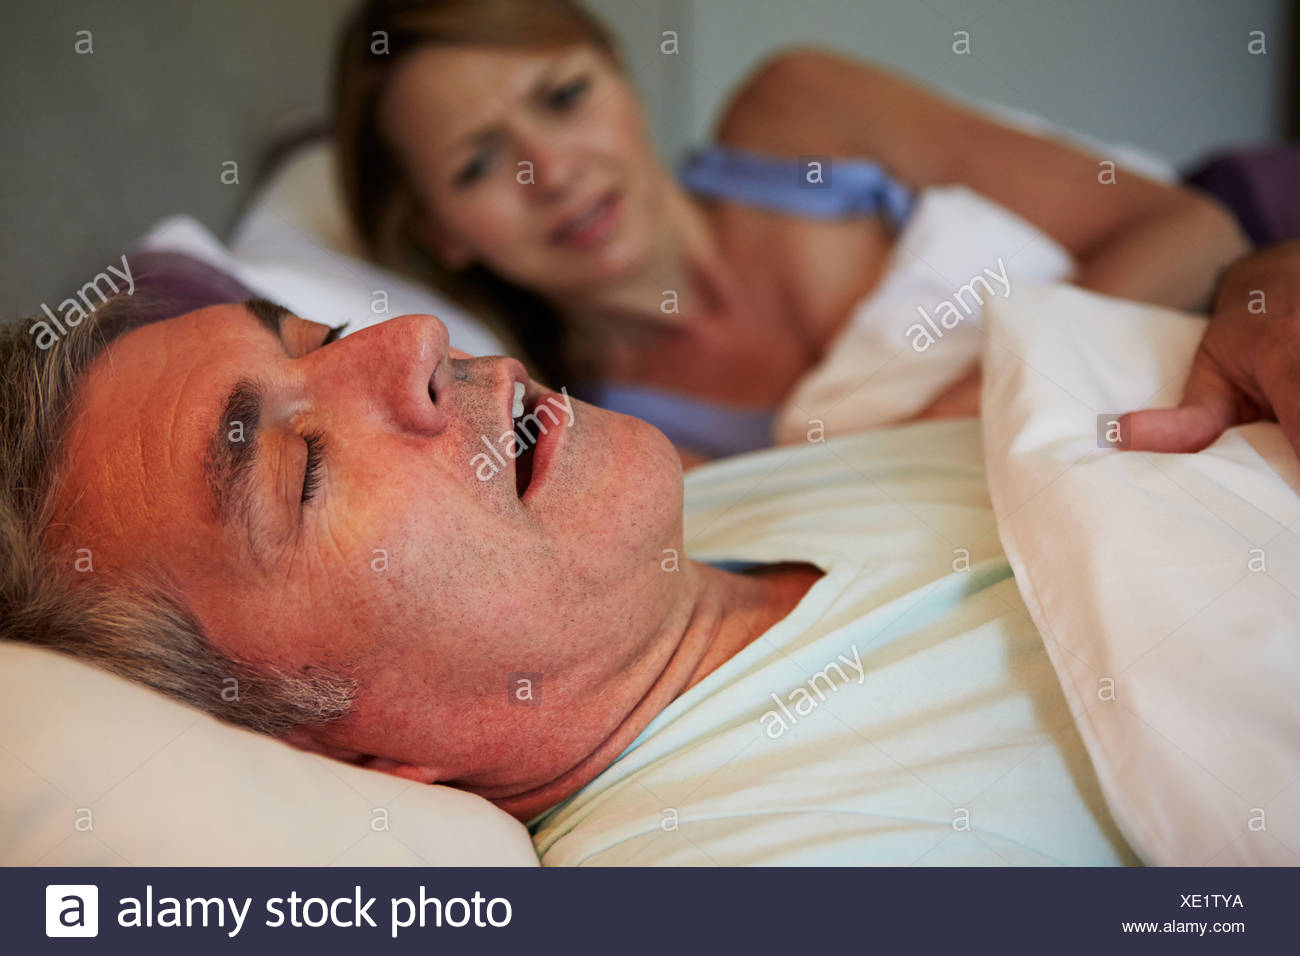 Man Keeping Woman Awake In Bed With Snoring - Stock Image